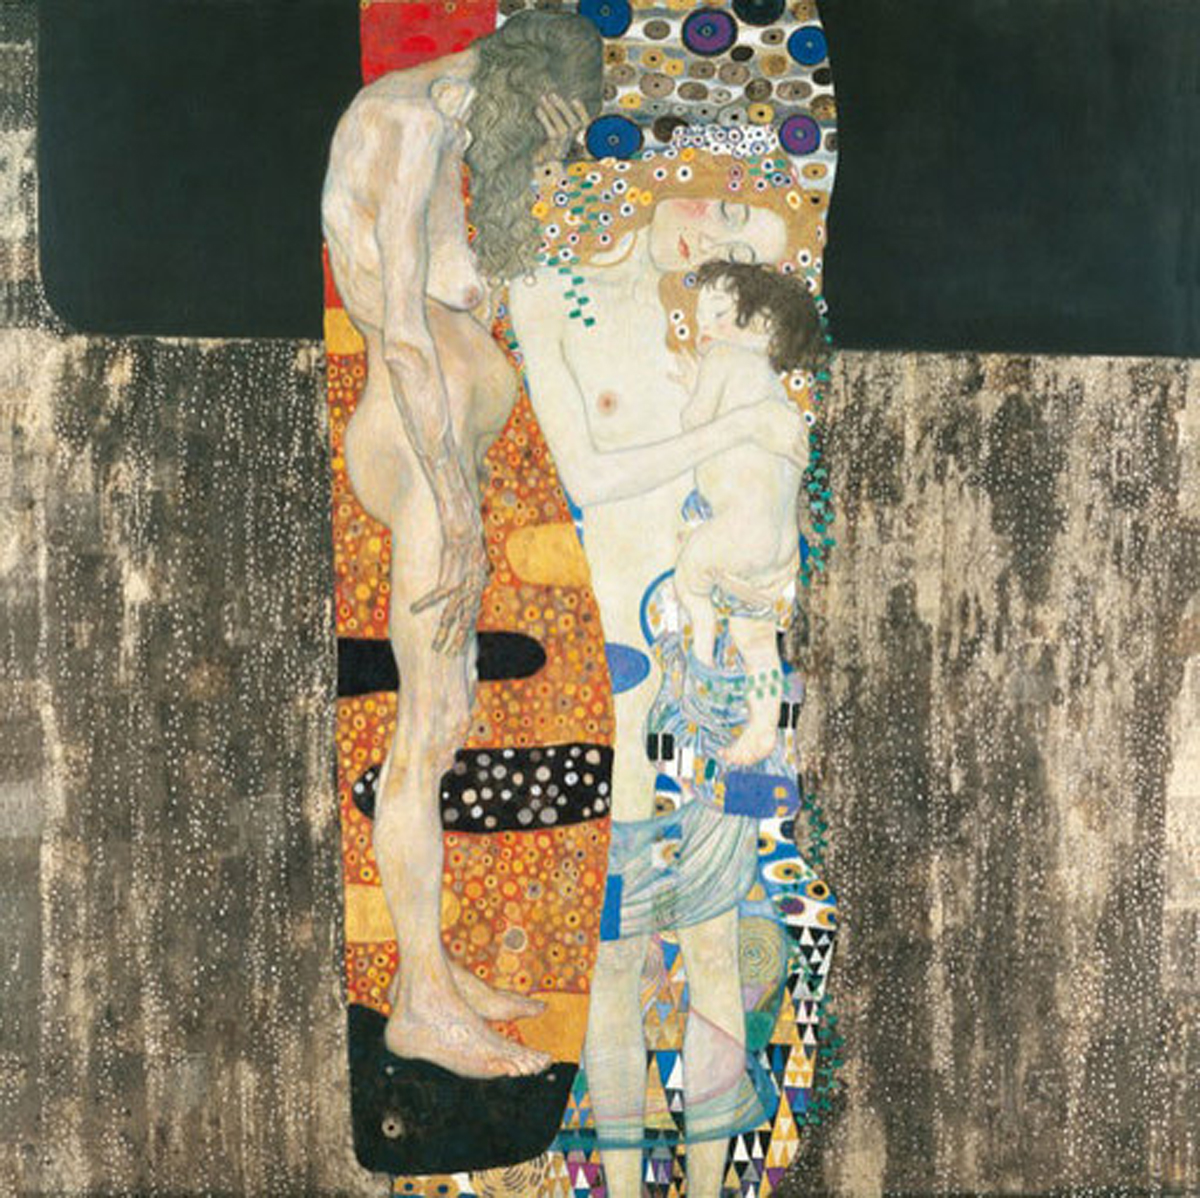 Arte-x Shop Wien Gustav Klimt And The 1908 Kunstschau Tate